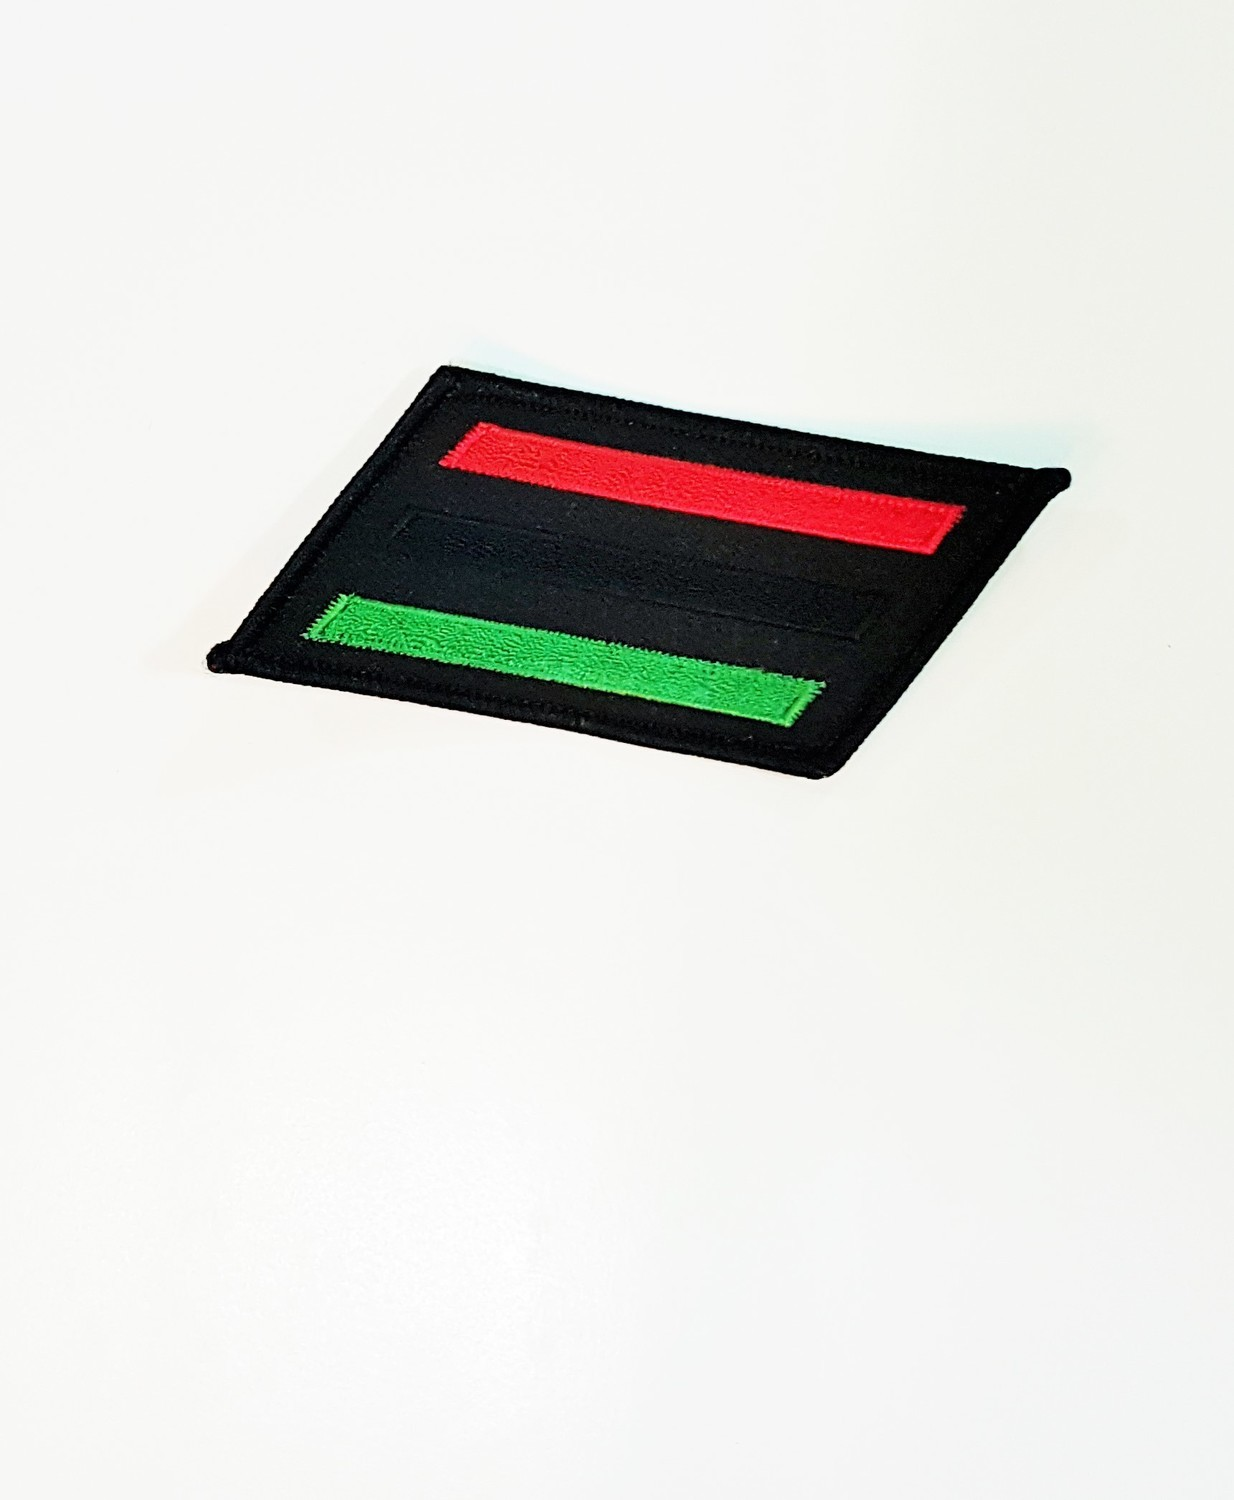 Small Red, Black, and Green (RBG) Patch